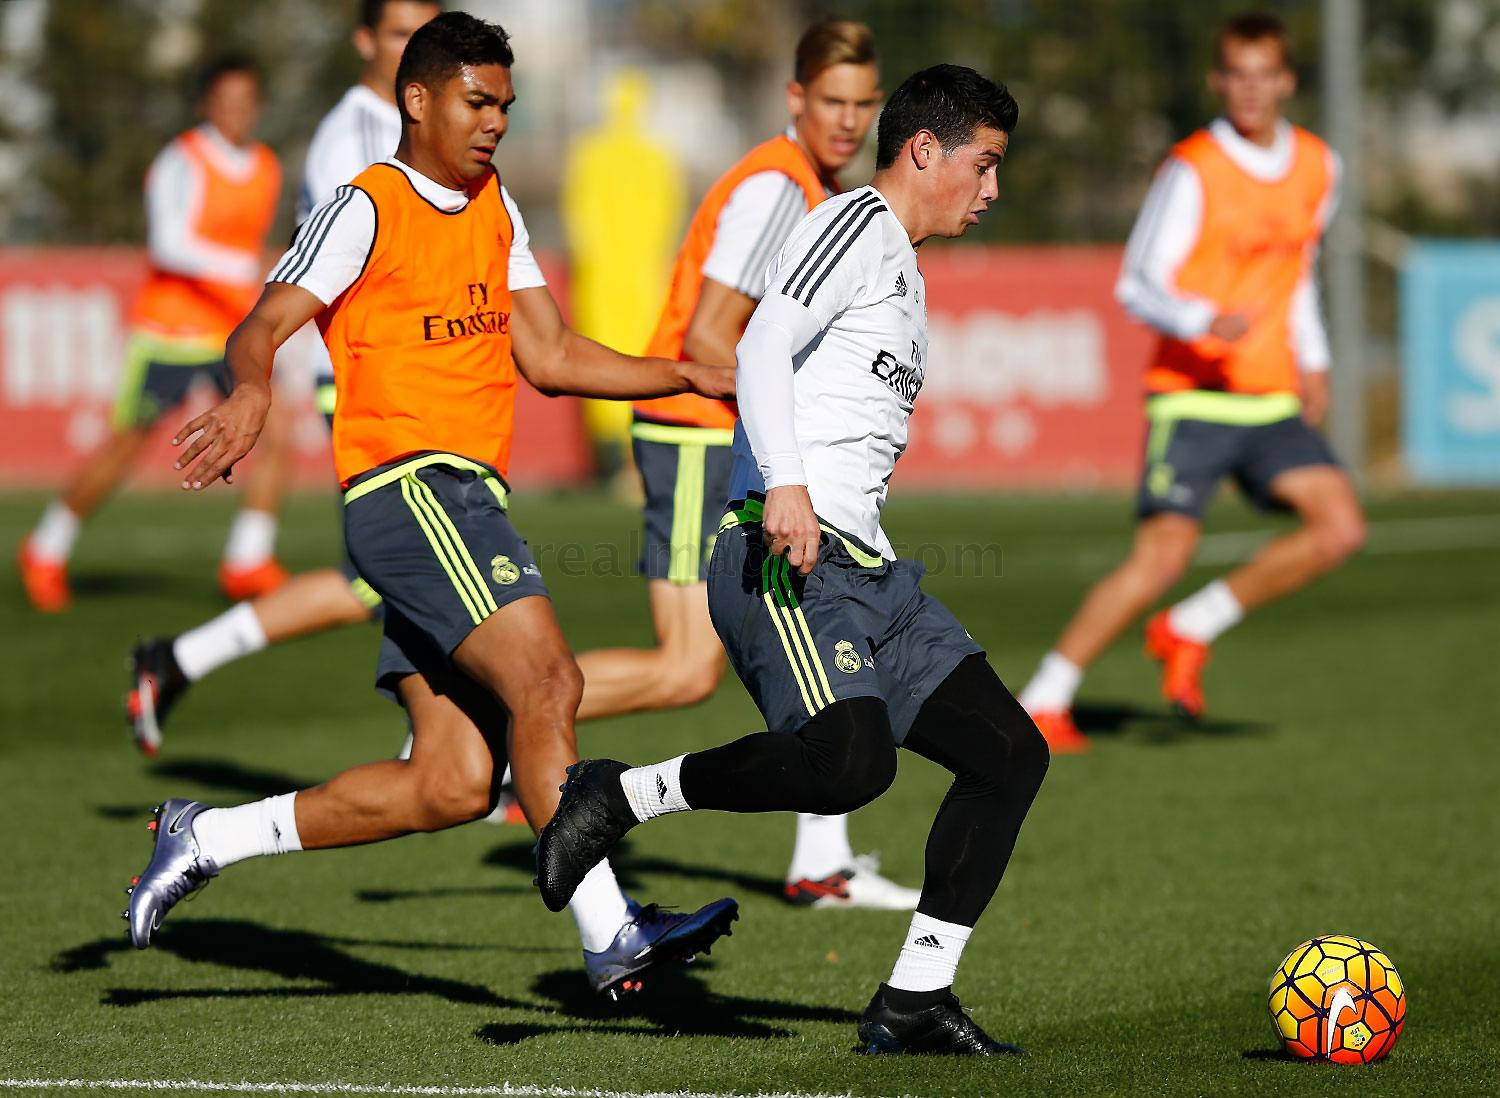 Real Madrid - Entrenamiento del Real Madrid - 27-11-2015